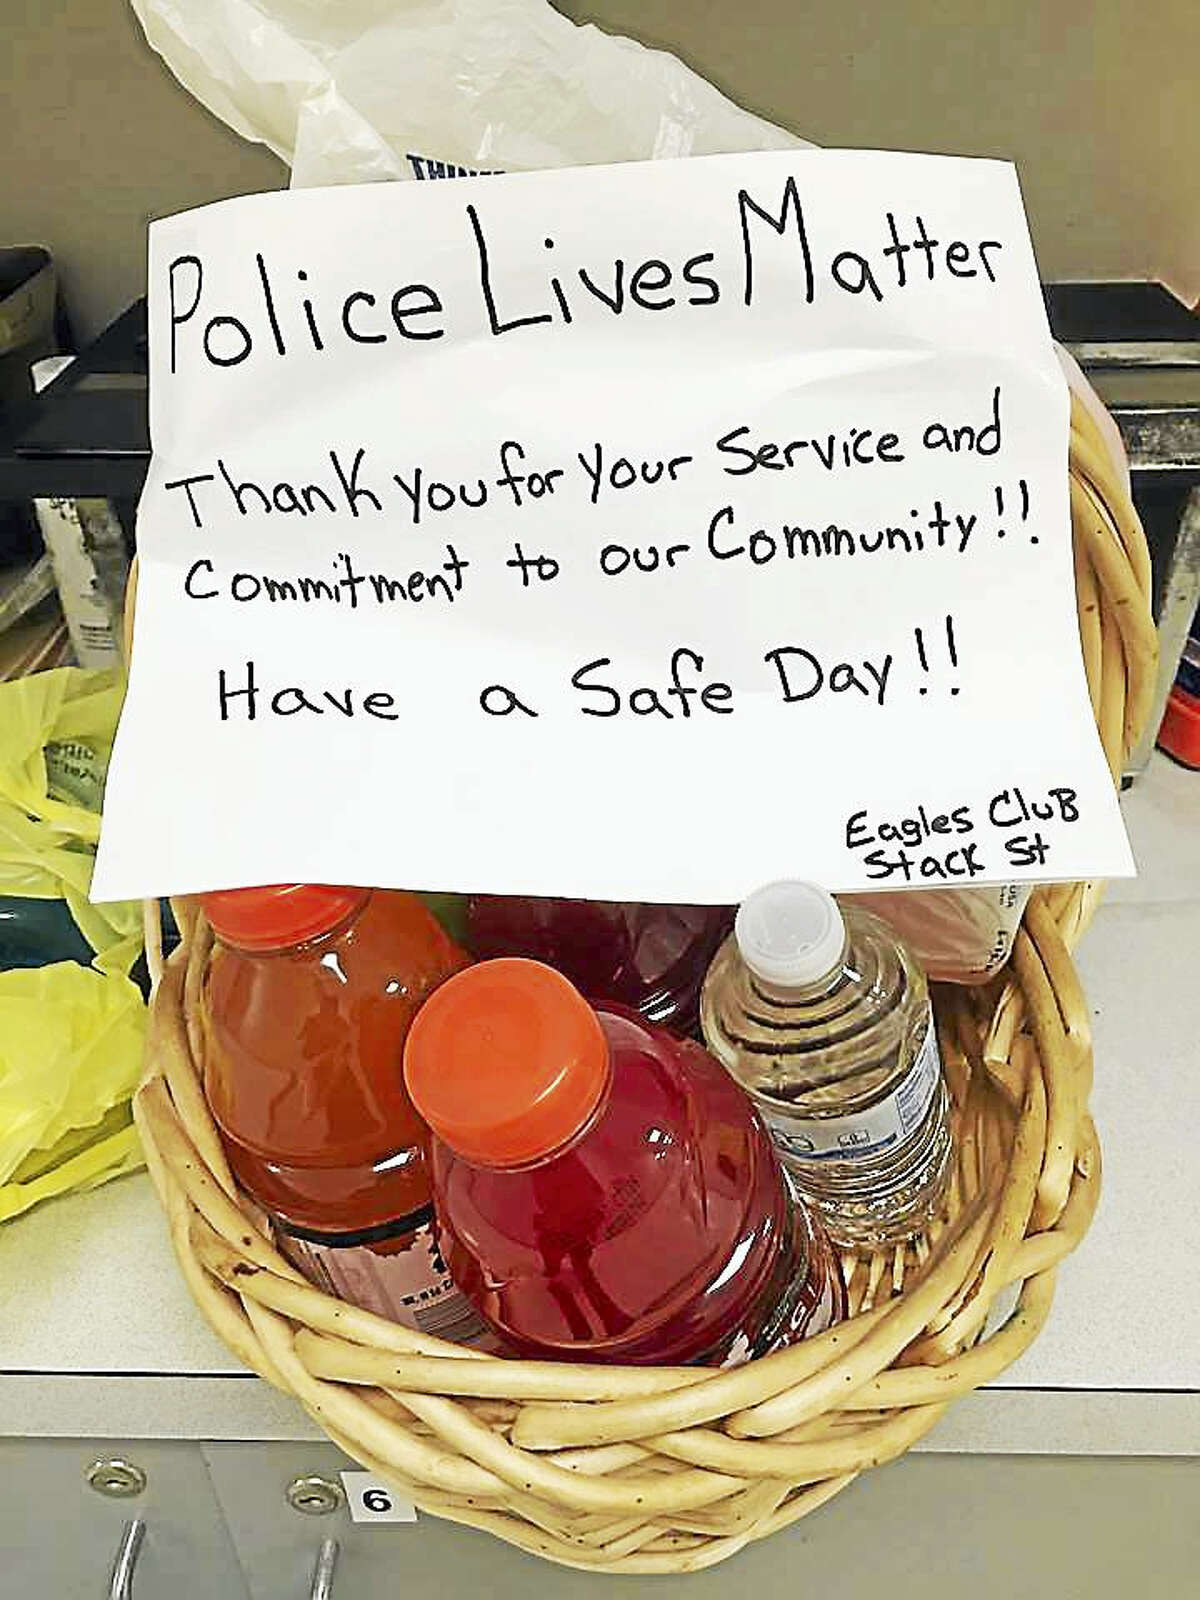 There's been an outpouring of public support for Middletown officers making the trip — donations of food, money, baked goods, fruit baskets and more.